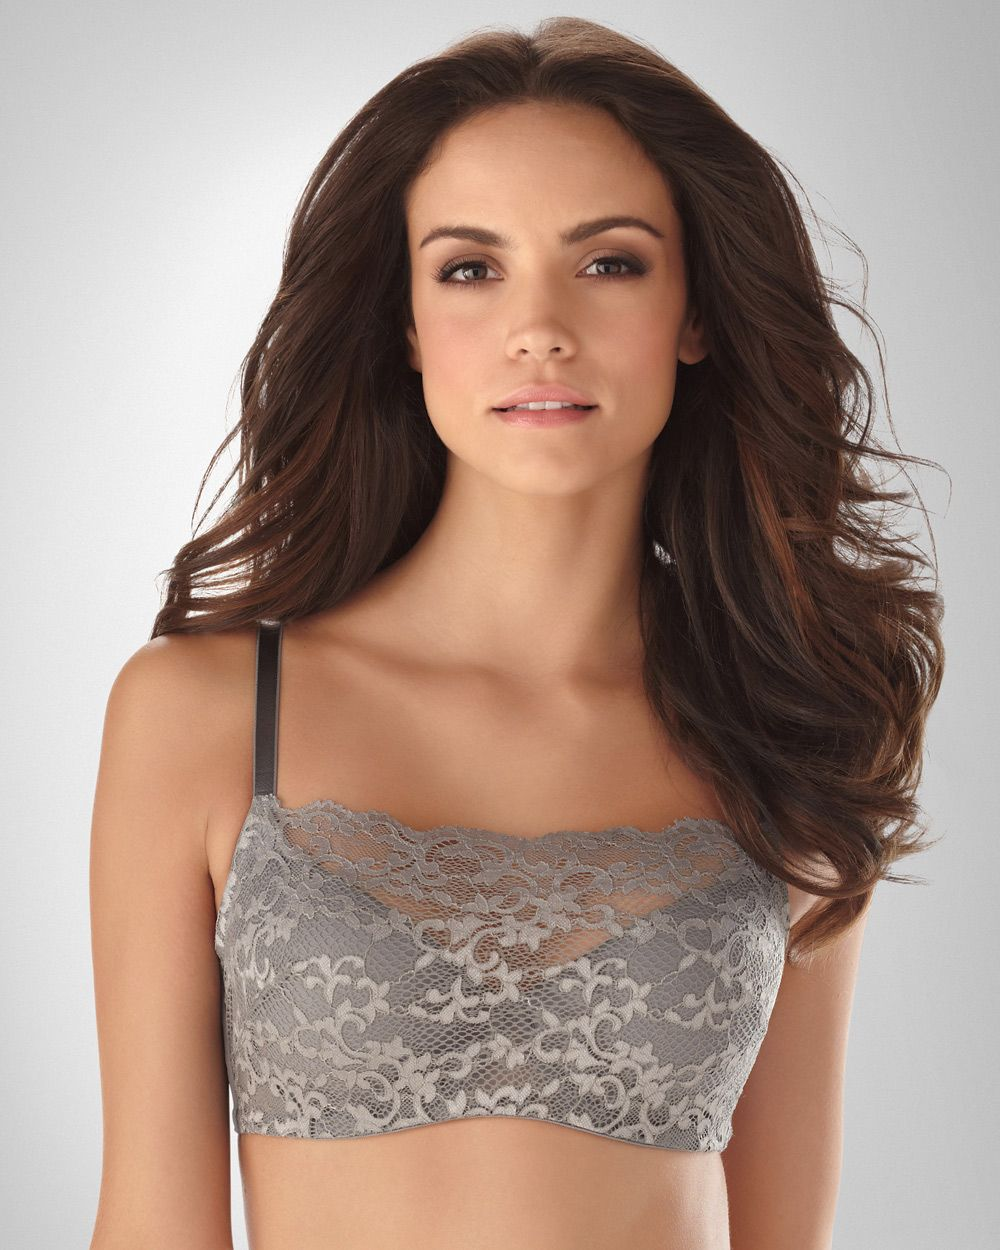 eda575b1a386e Soma Intimates - Dove-Silver Diamond Oh My Gorgeous Camisole Bra by Soma  Intimates